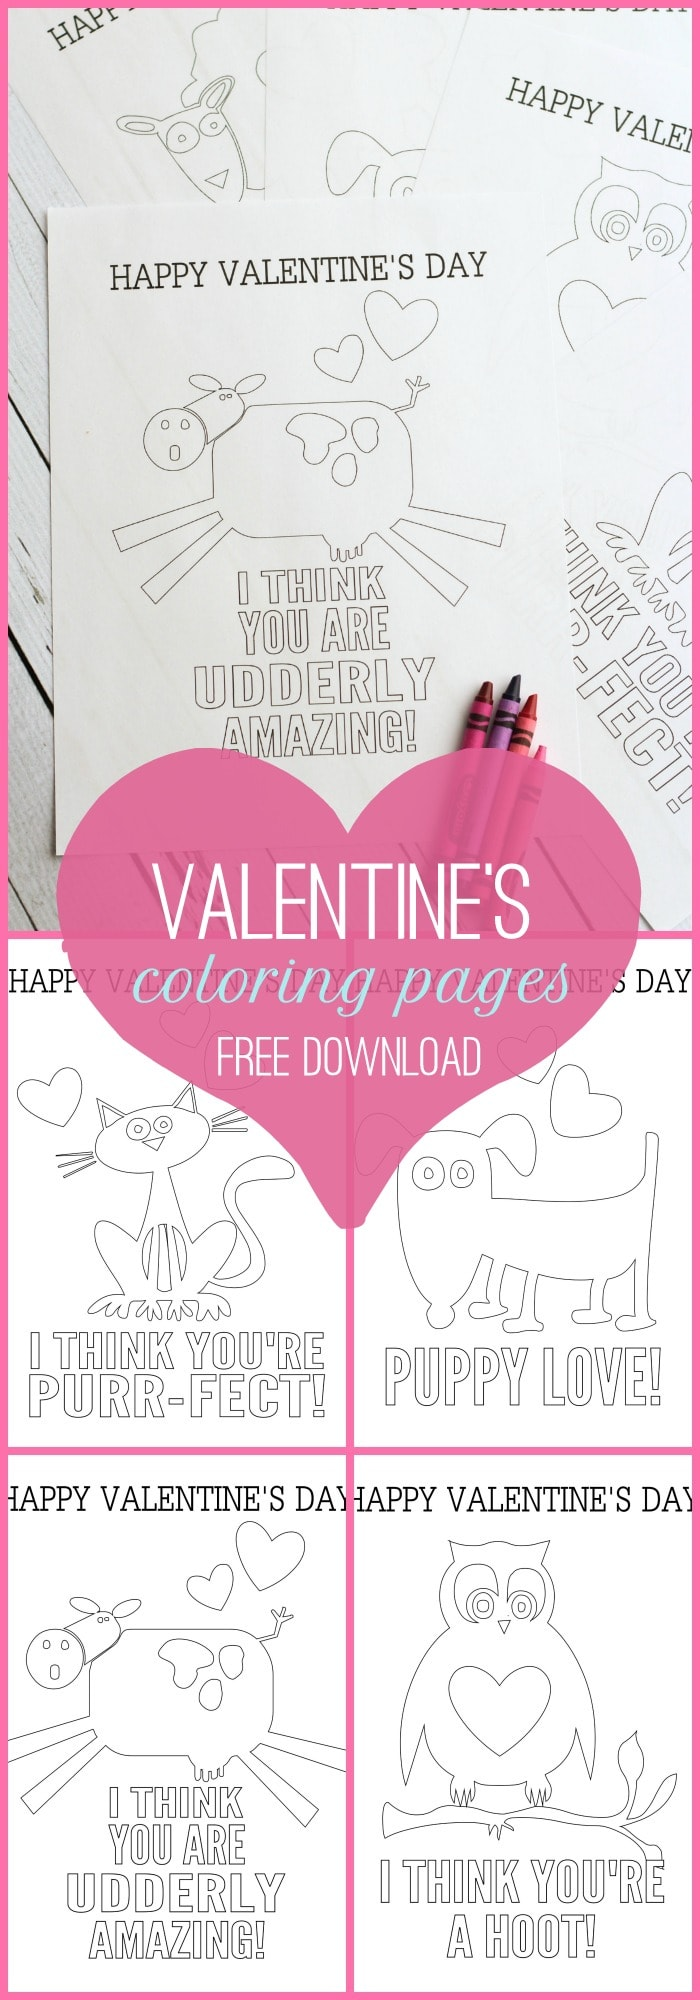 FREE Valentine's Day Coloring Pages on { lilluna.com } The kids will love coloring these cute pages!